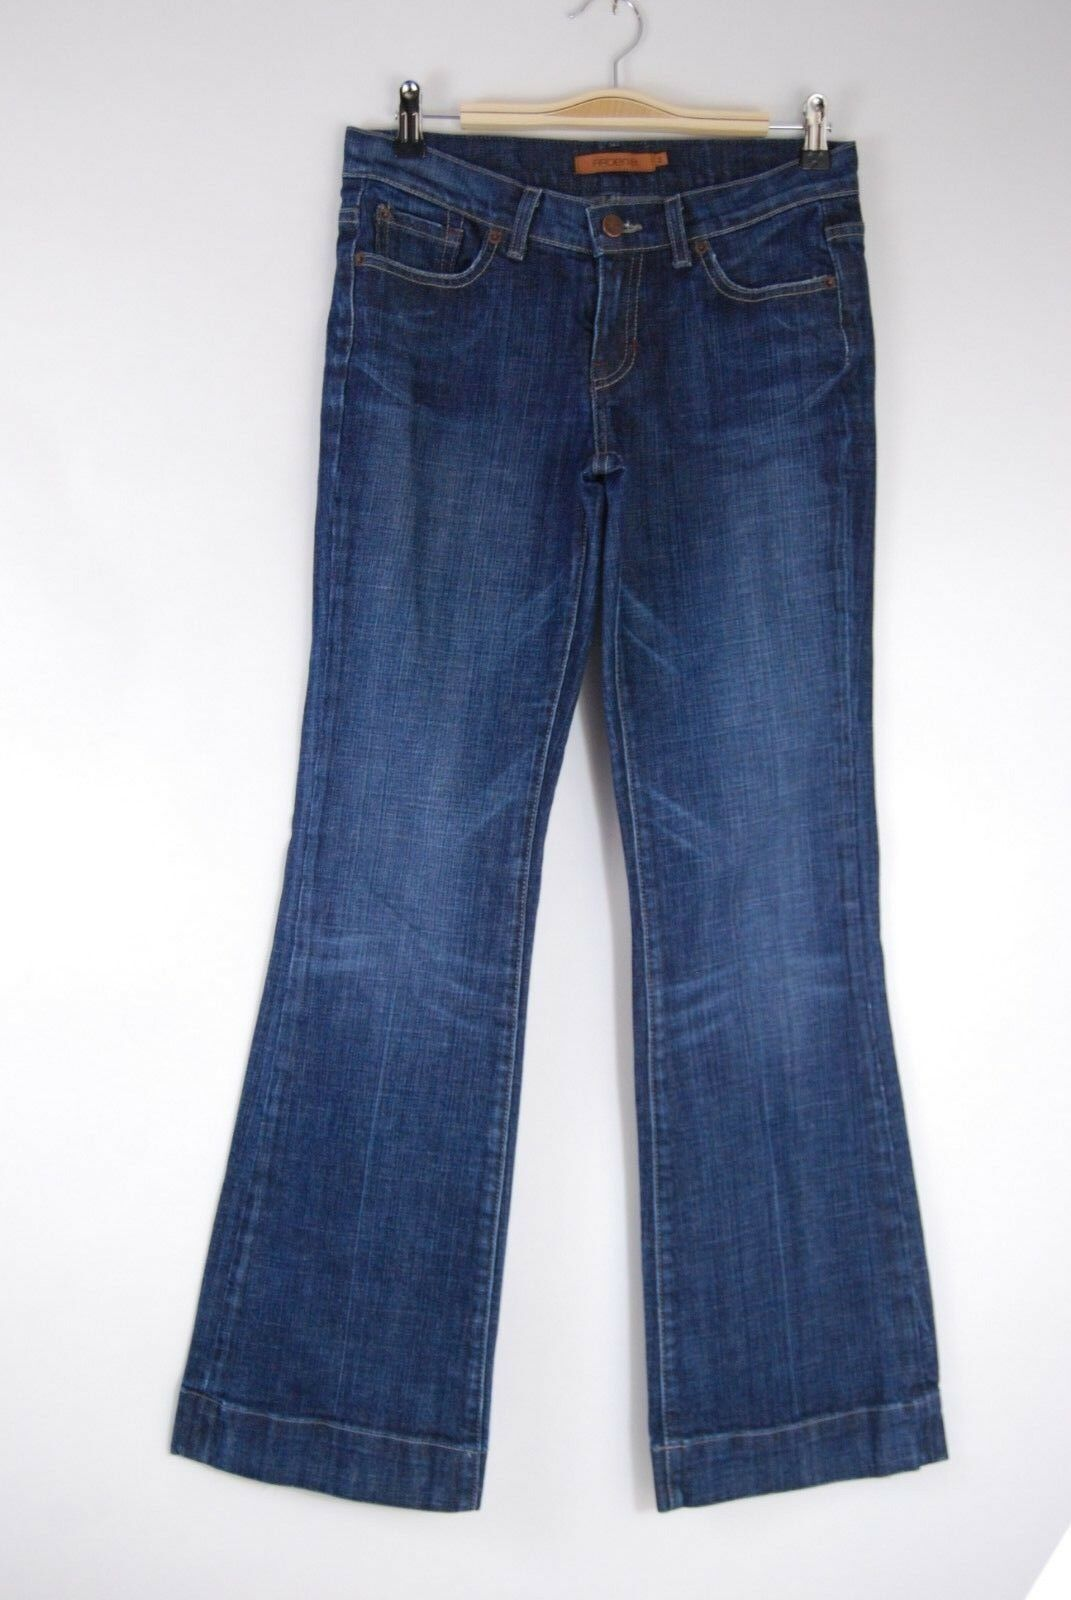 Primary image for Arden B Boot Cut Jeans - Size 2